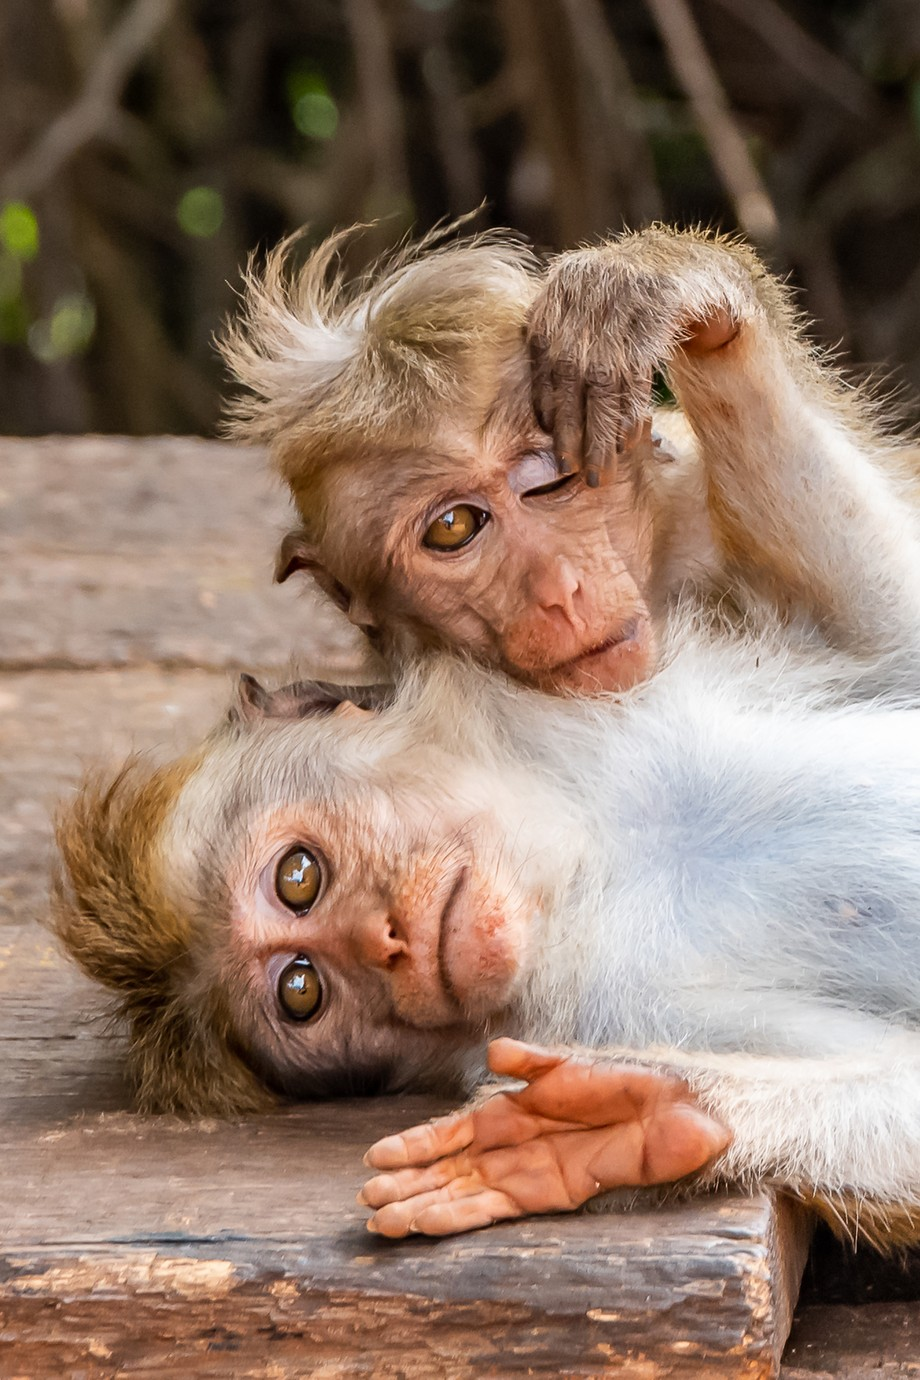 Monkeys with that just got out of bed look by johnpreston_5231 - Social Exposure Photo Contest Vol 17